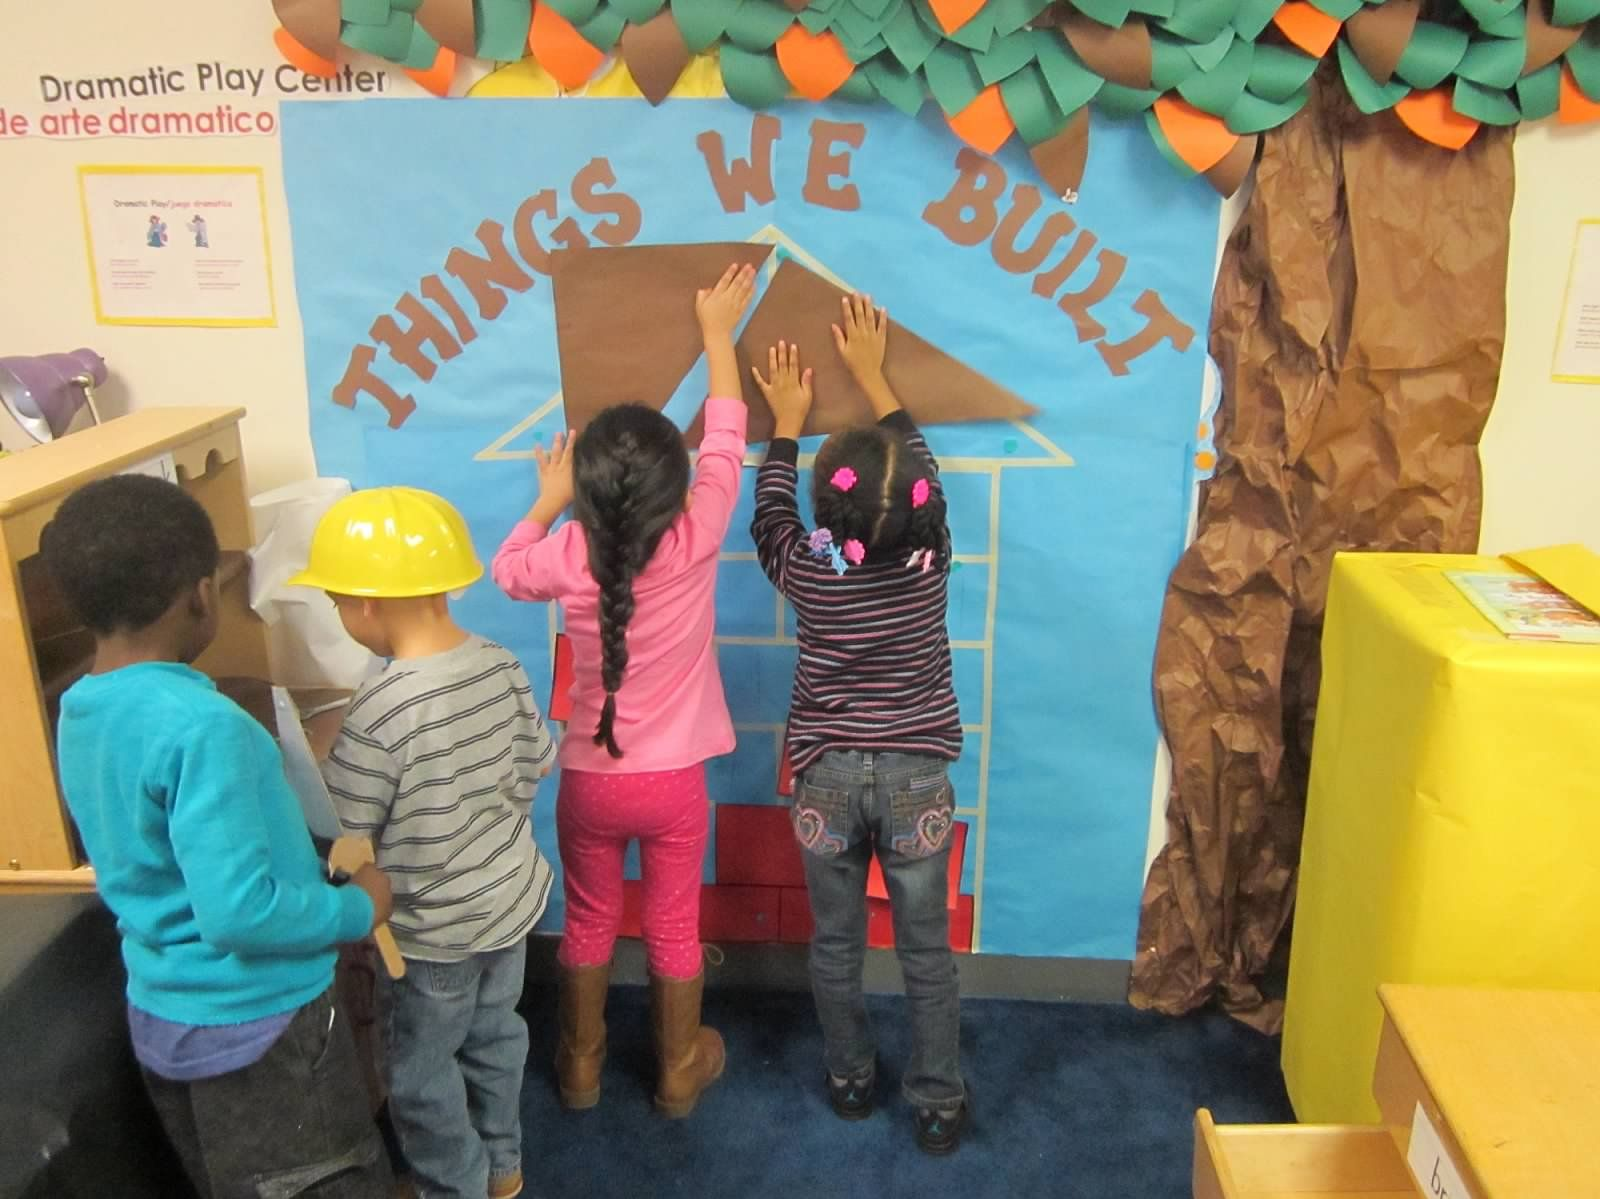 Dramatic Play:Things We Build- I made a blueprint of a house with shapes then I gave the students the big cut out shapes to match them on the wall and buld the house. The had so much fun fitting the shapes in.